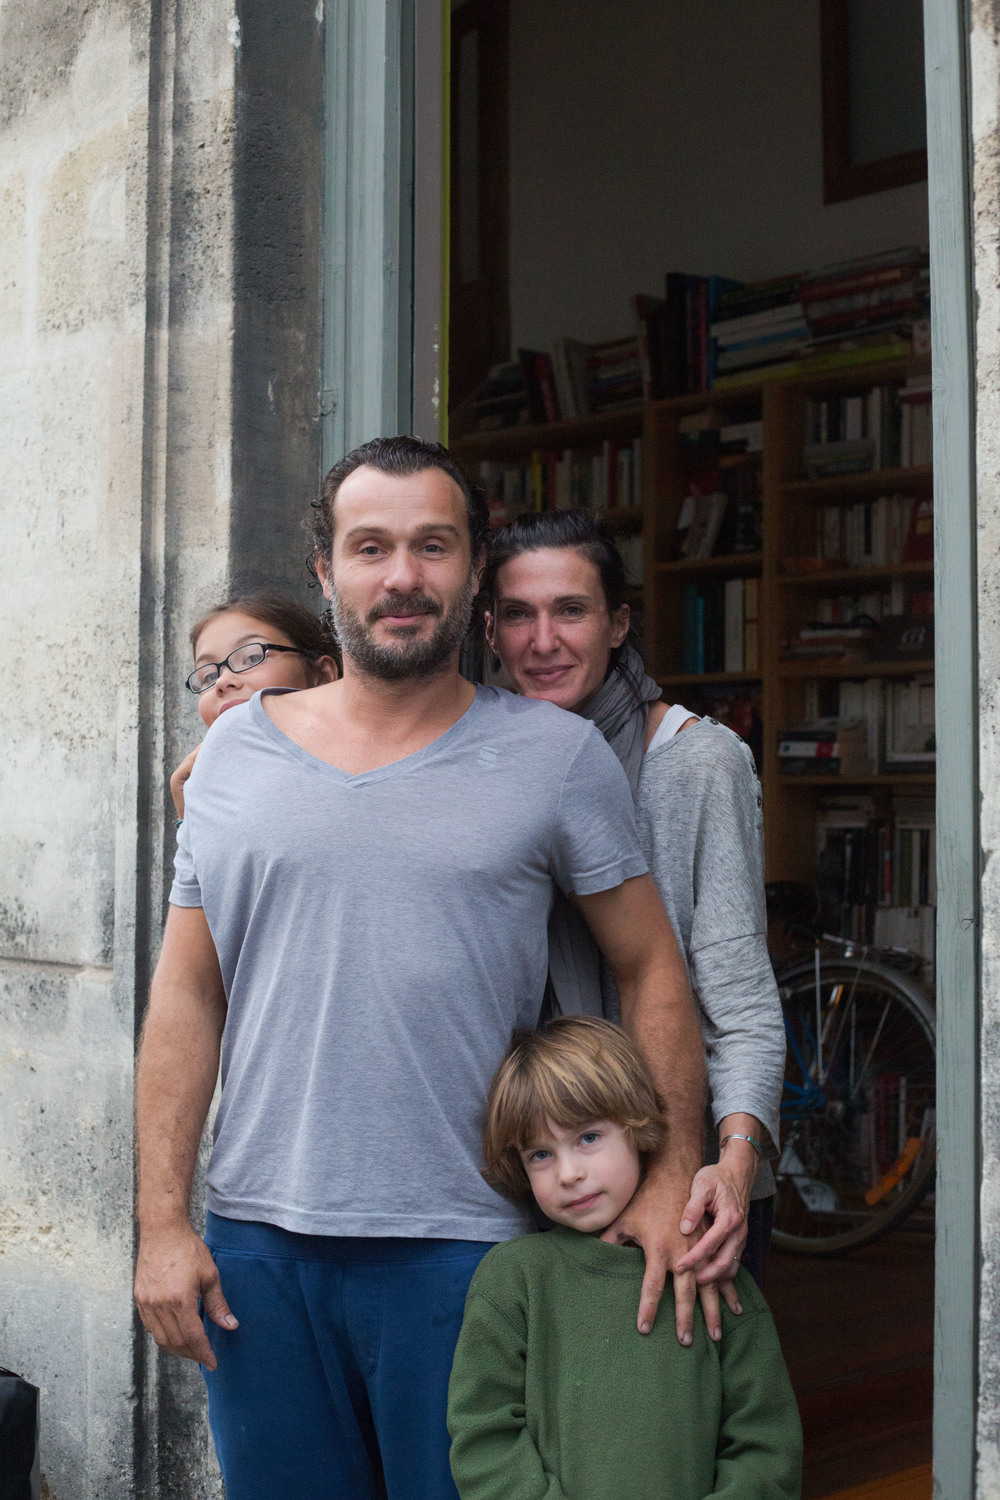 Our wonderful family in Bordeaux.